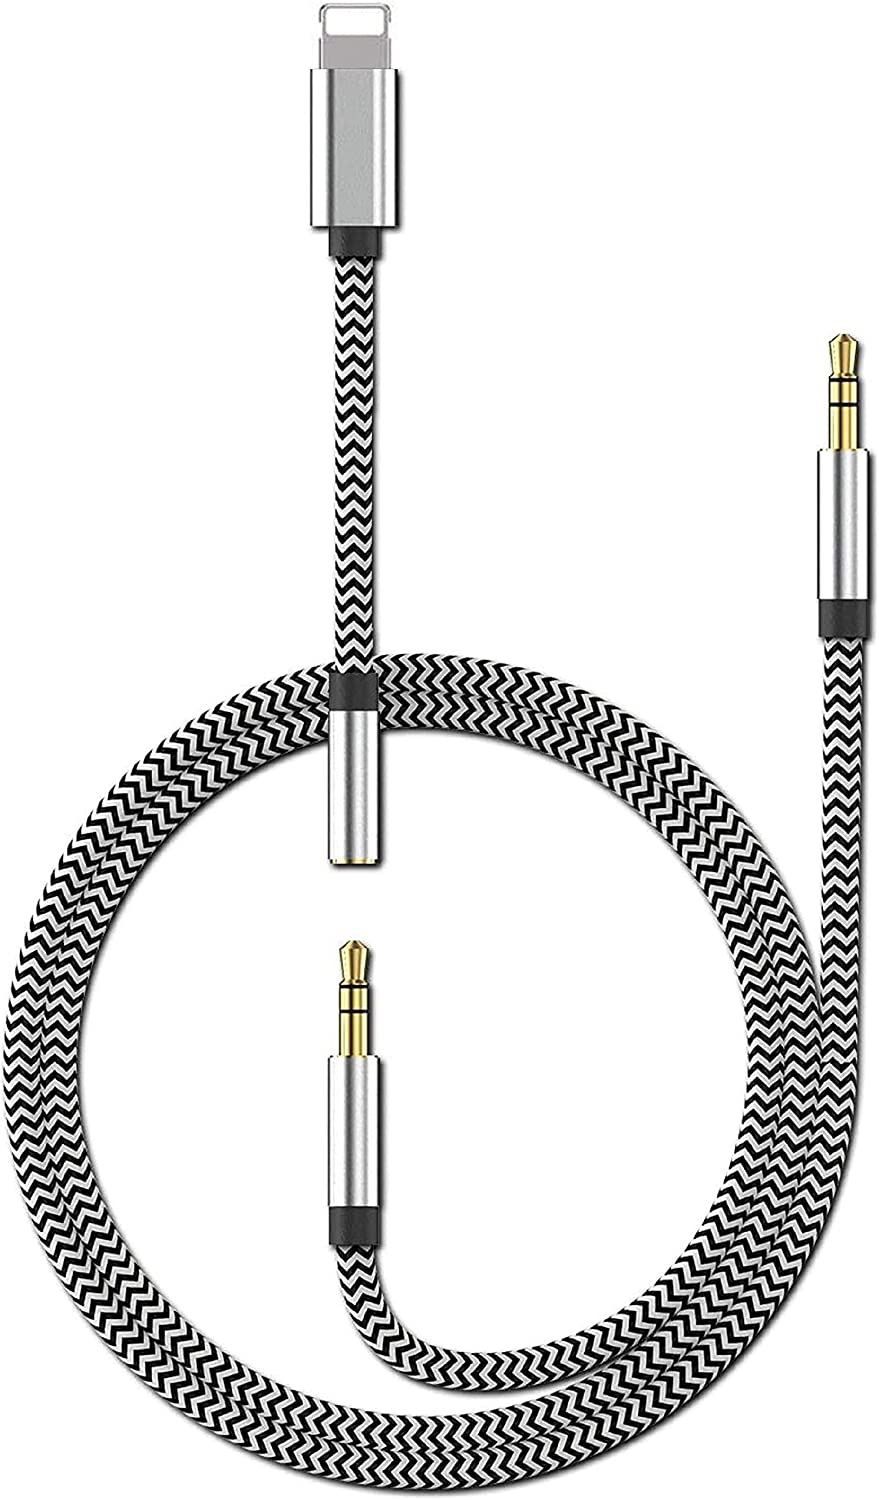 Aux Cord for iPhone,[Apple MFi Certified] 3 in 1 Lightning to 3.5mm Headphone Jack Adapter + Nylon Braided Male Aux Cable for iPhone 11/XS/XR/X/8/7 to Car Stereo/Speaker/Headphone - (3.3FT/Silver)